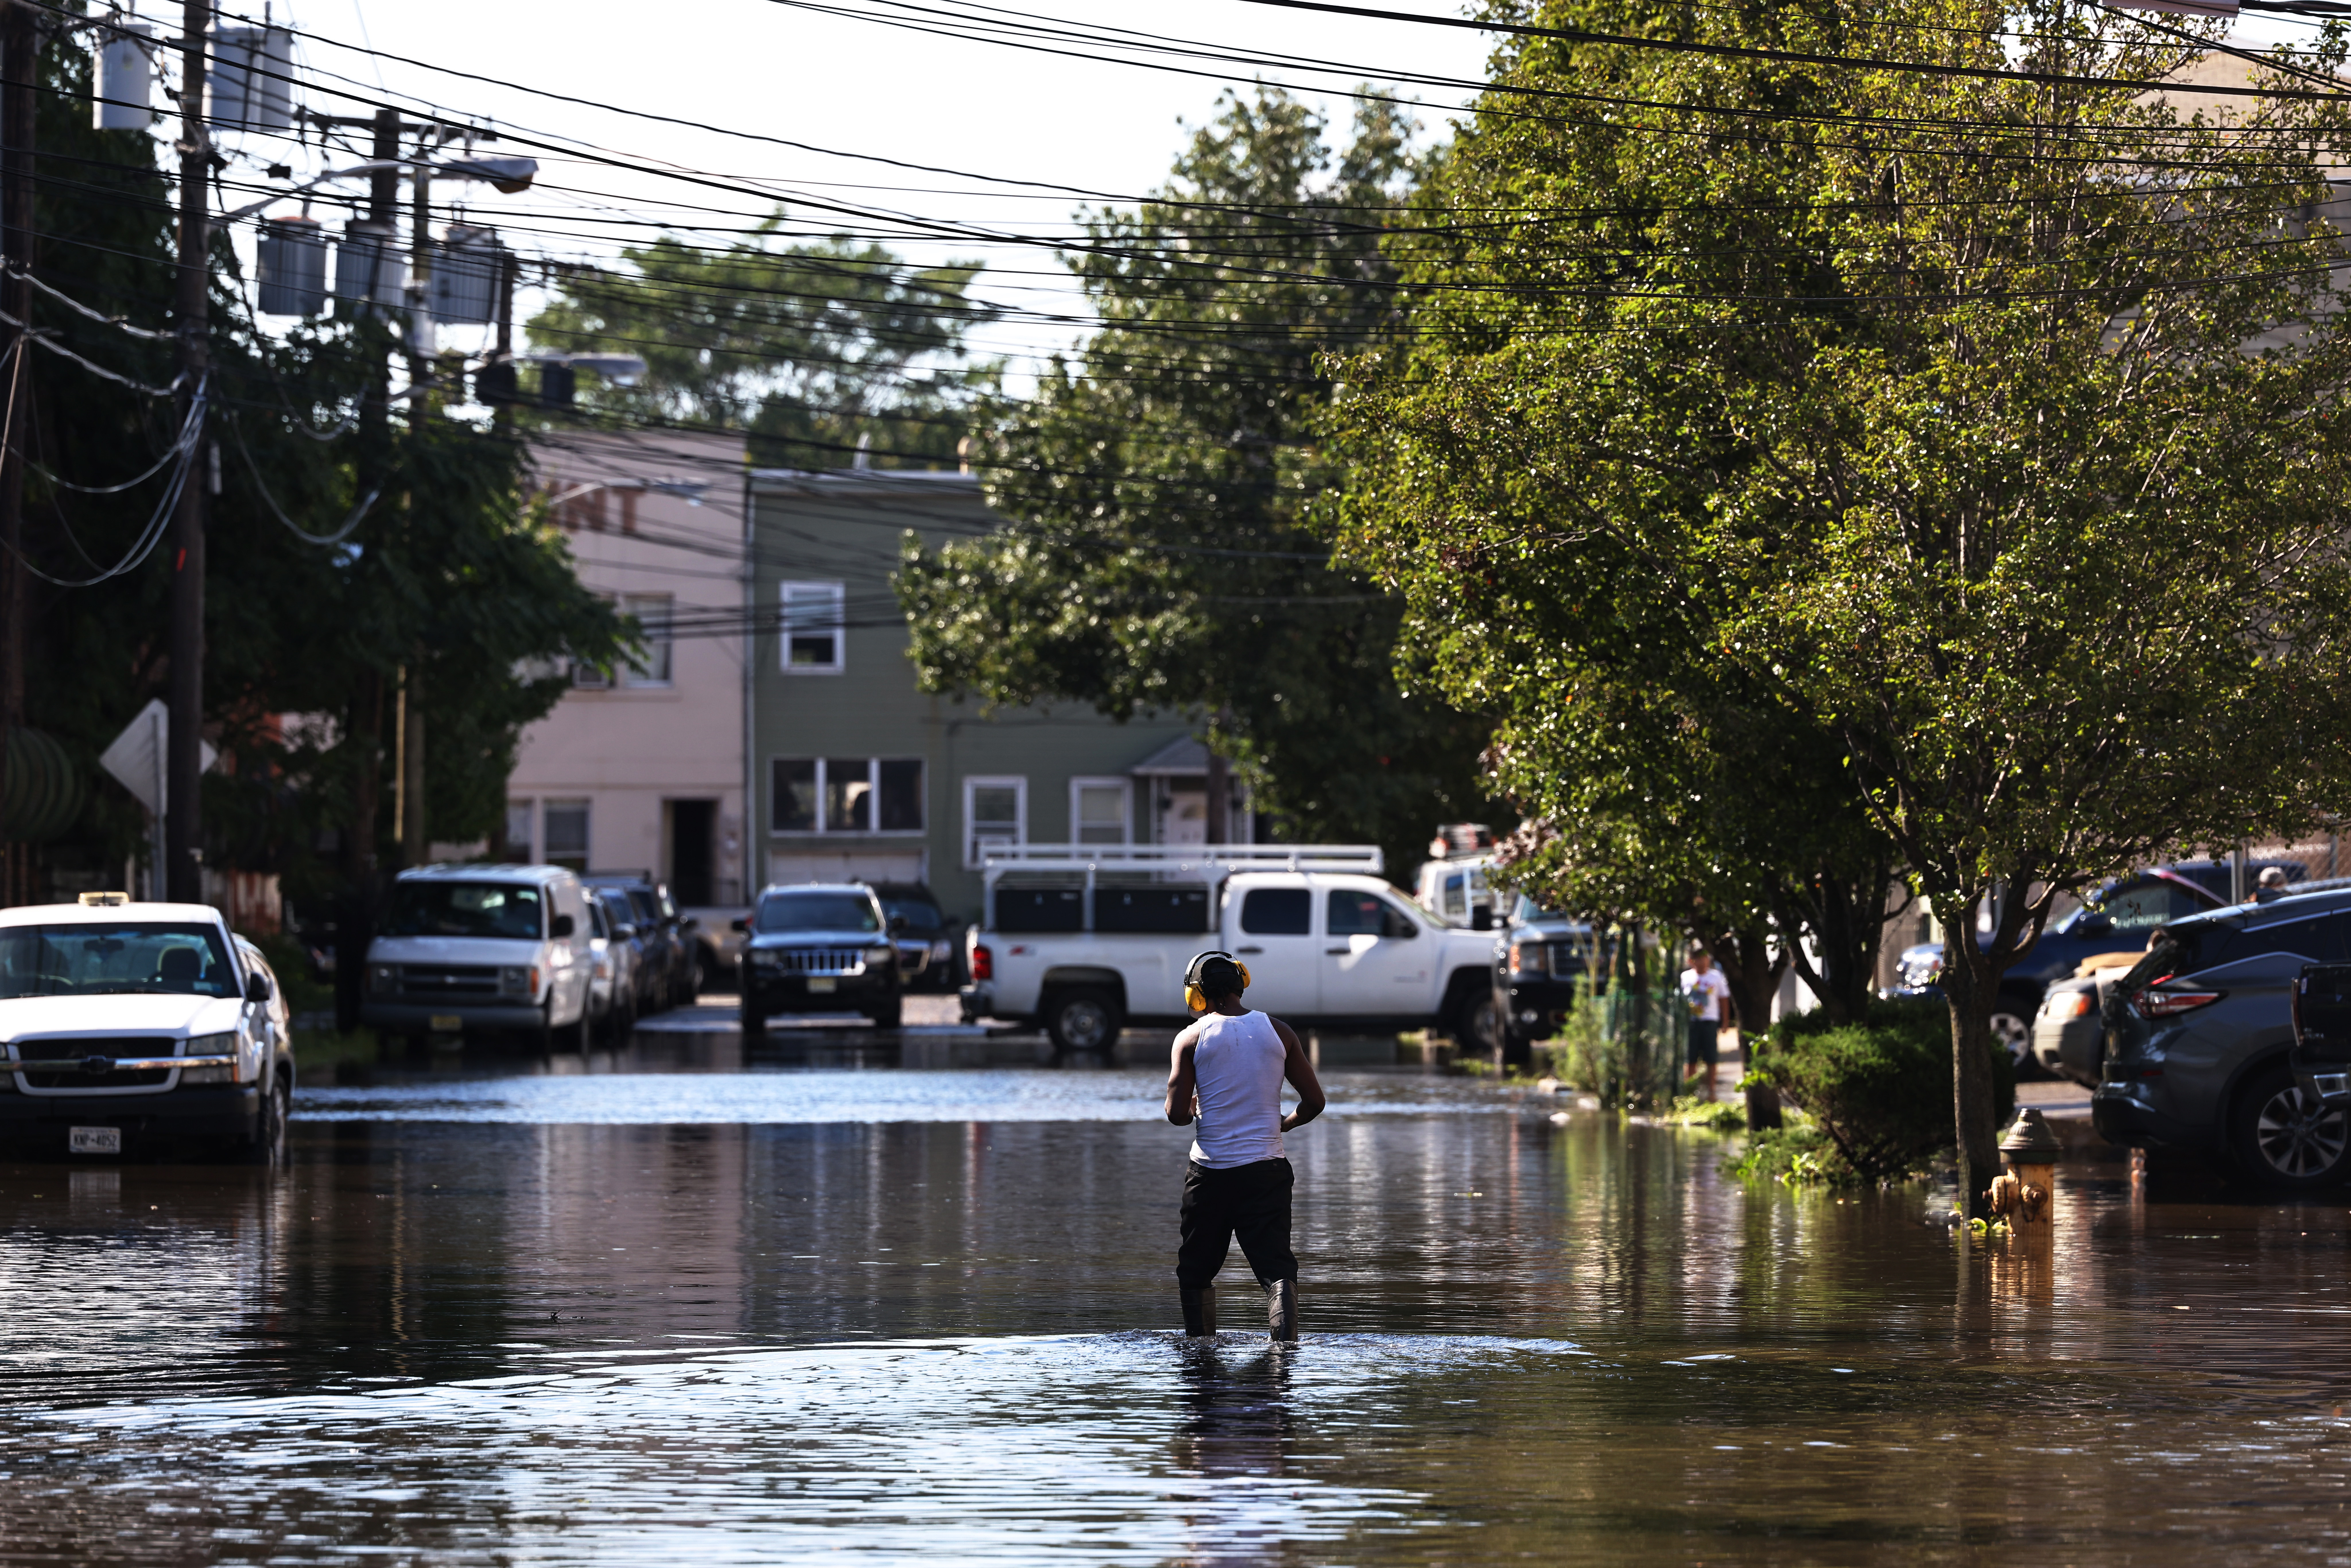 A man walks down a flooded street, lined with cars and large green trees.